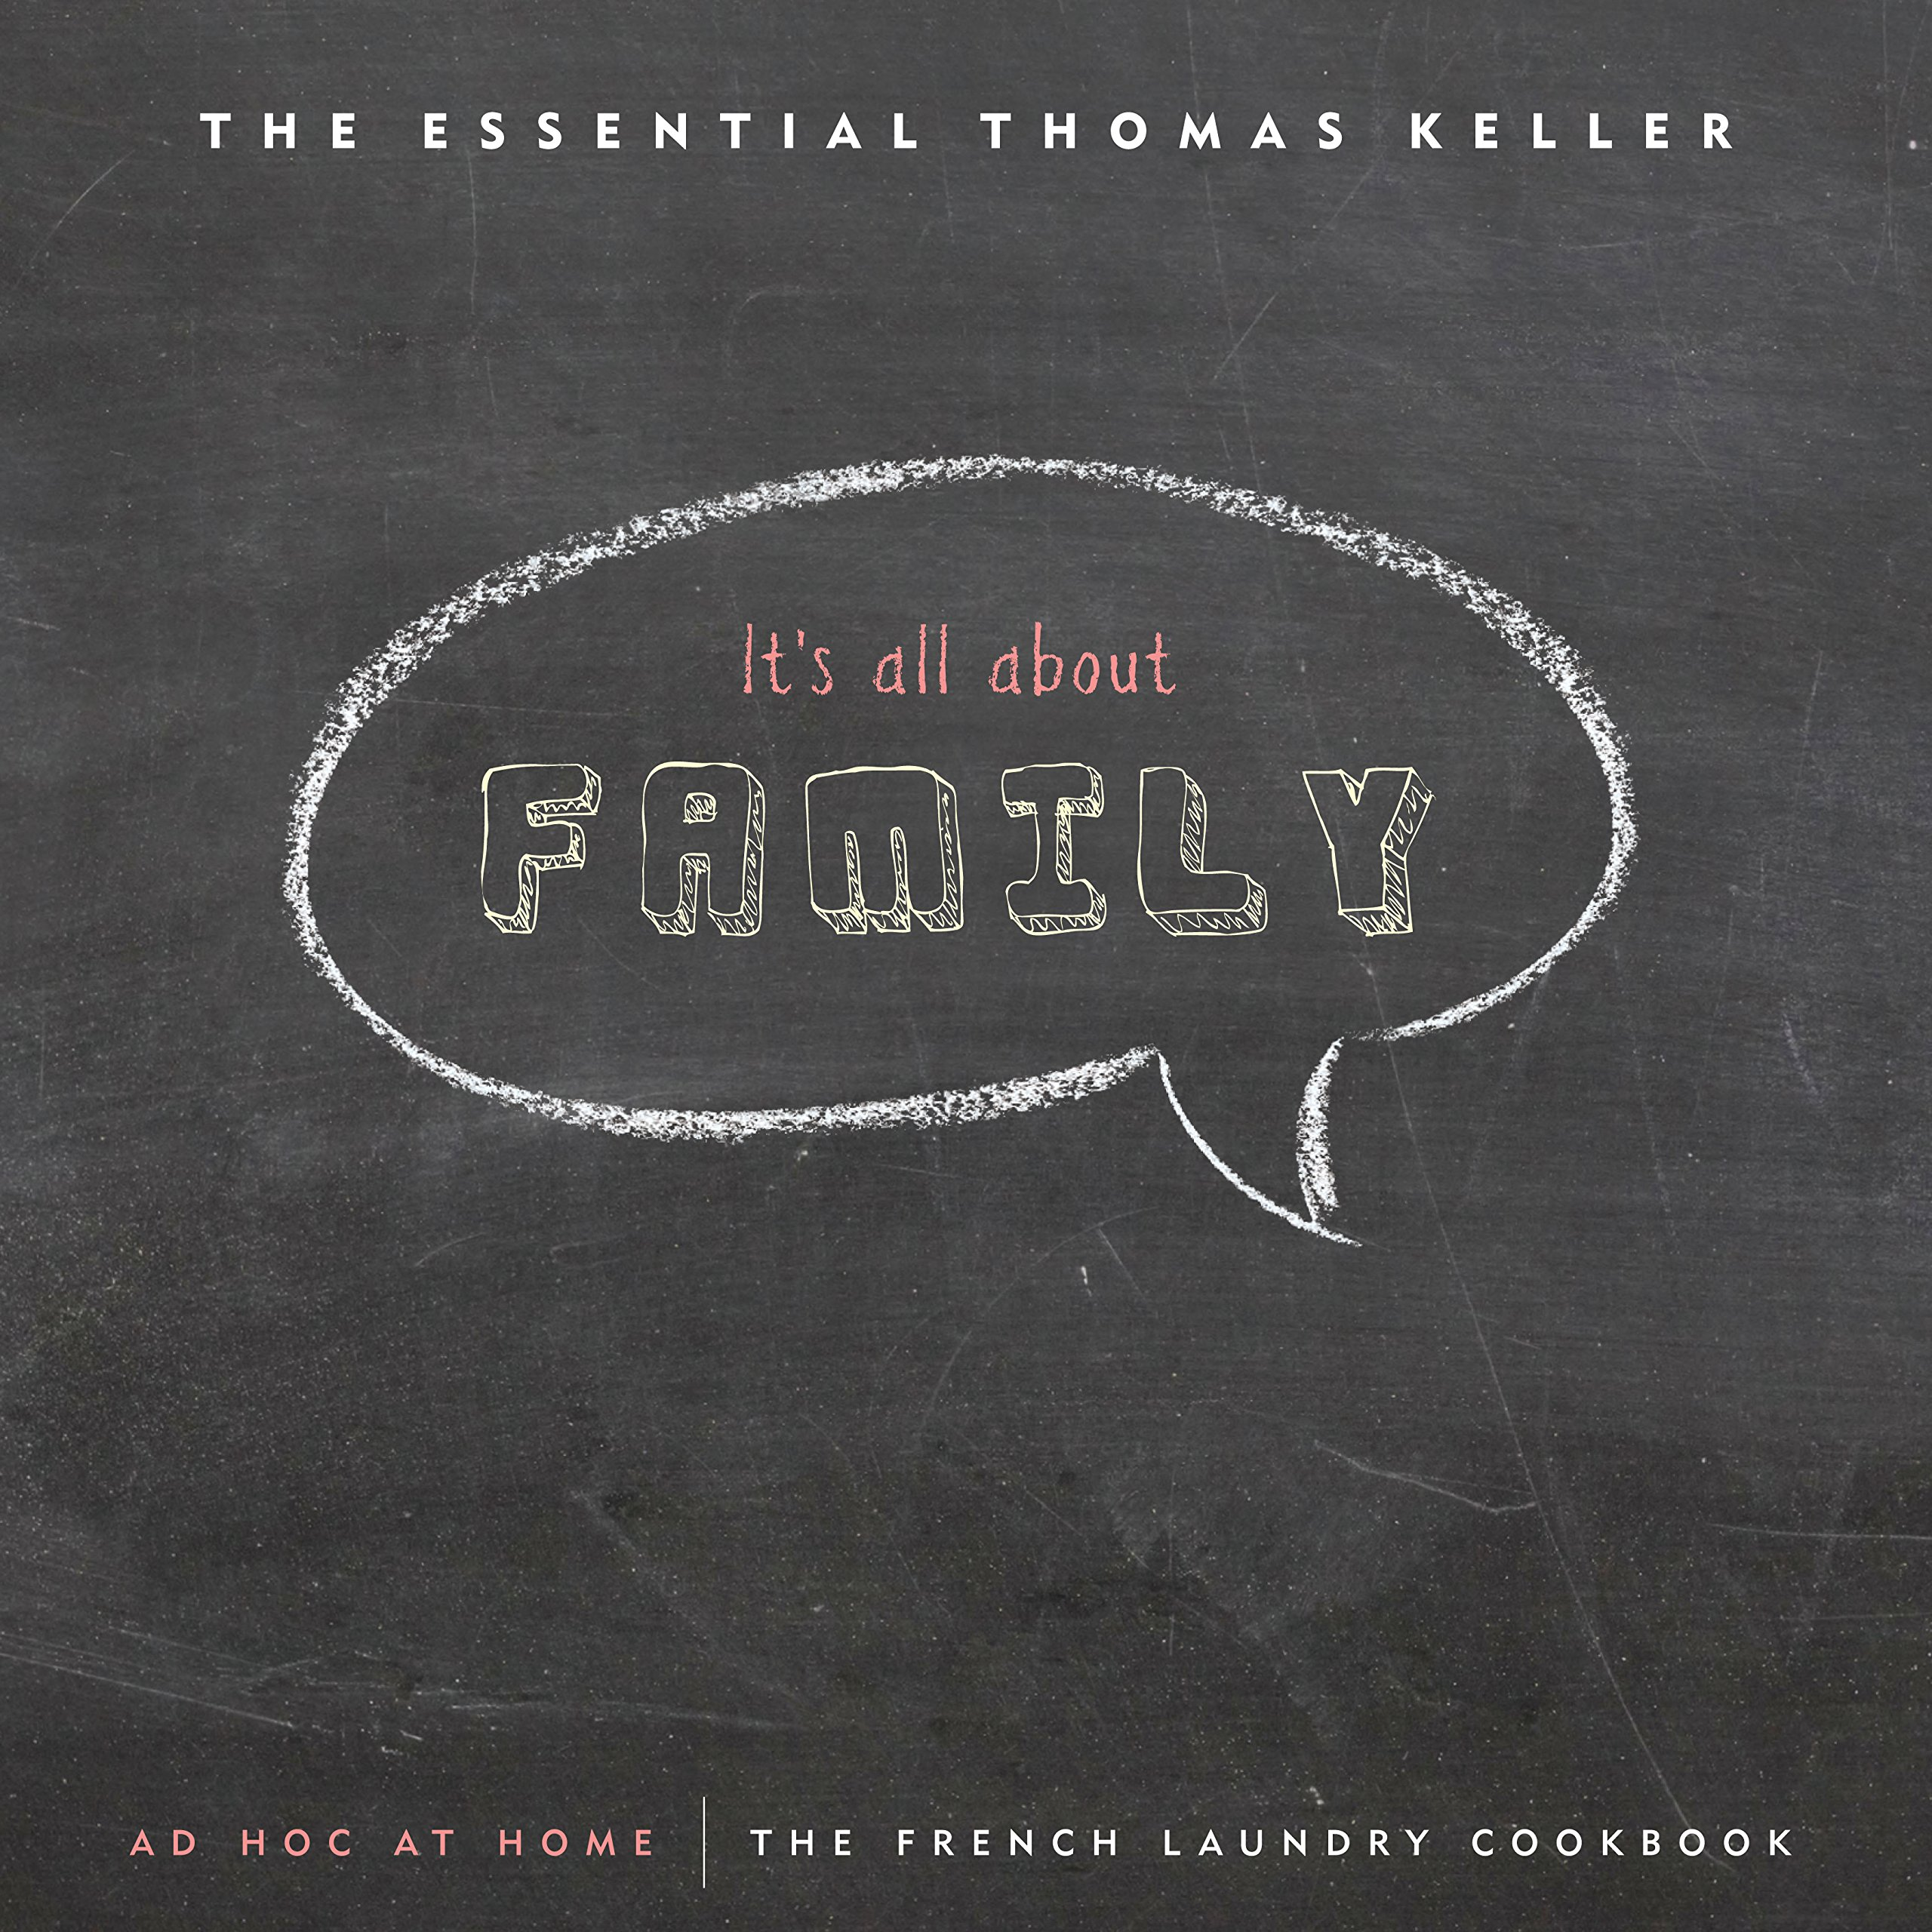 The Essential Thomas Keller: The French Laundry Cookbook & Ad Hoc at Home [Box Set] [Hardcover] by Artisan